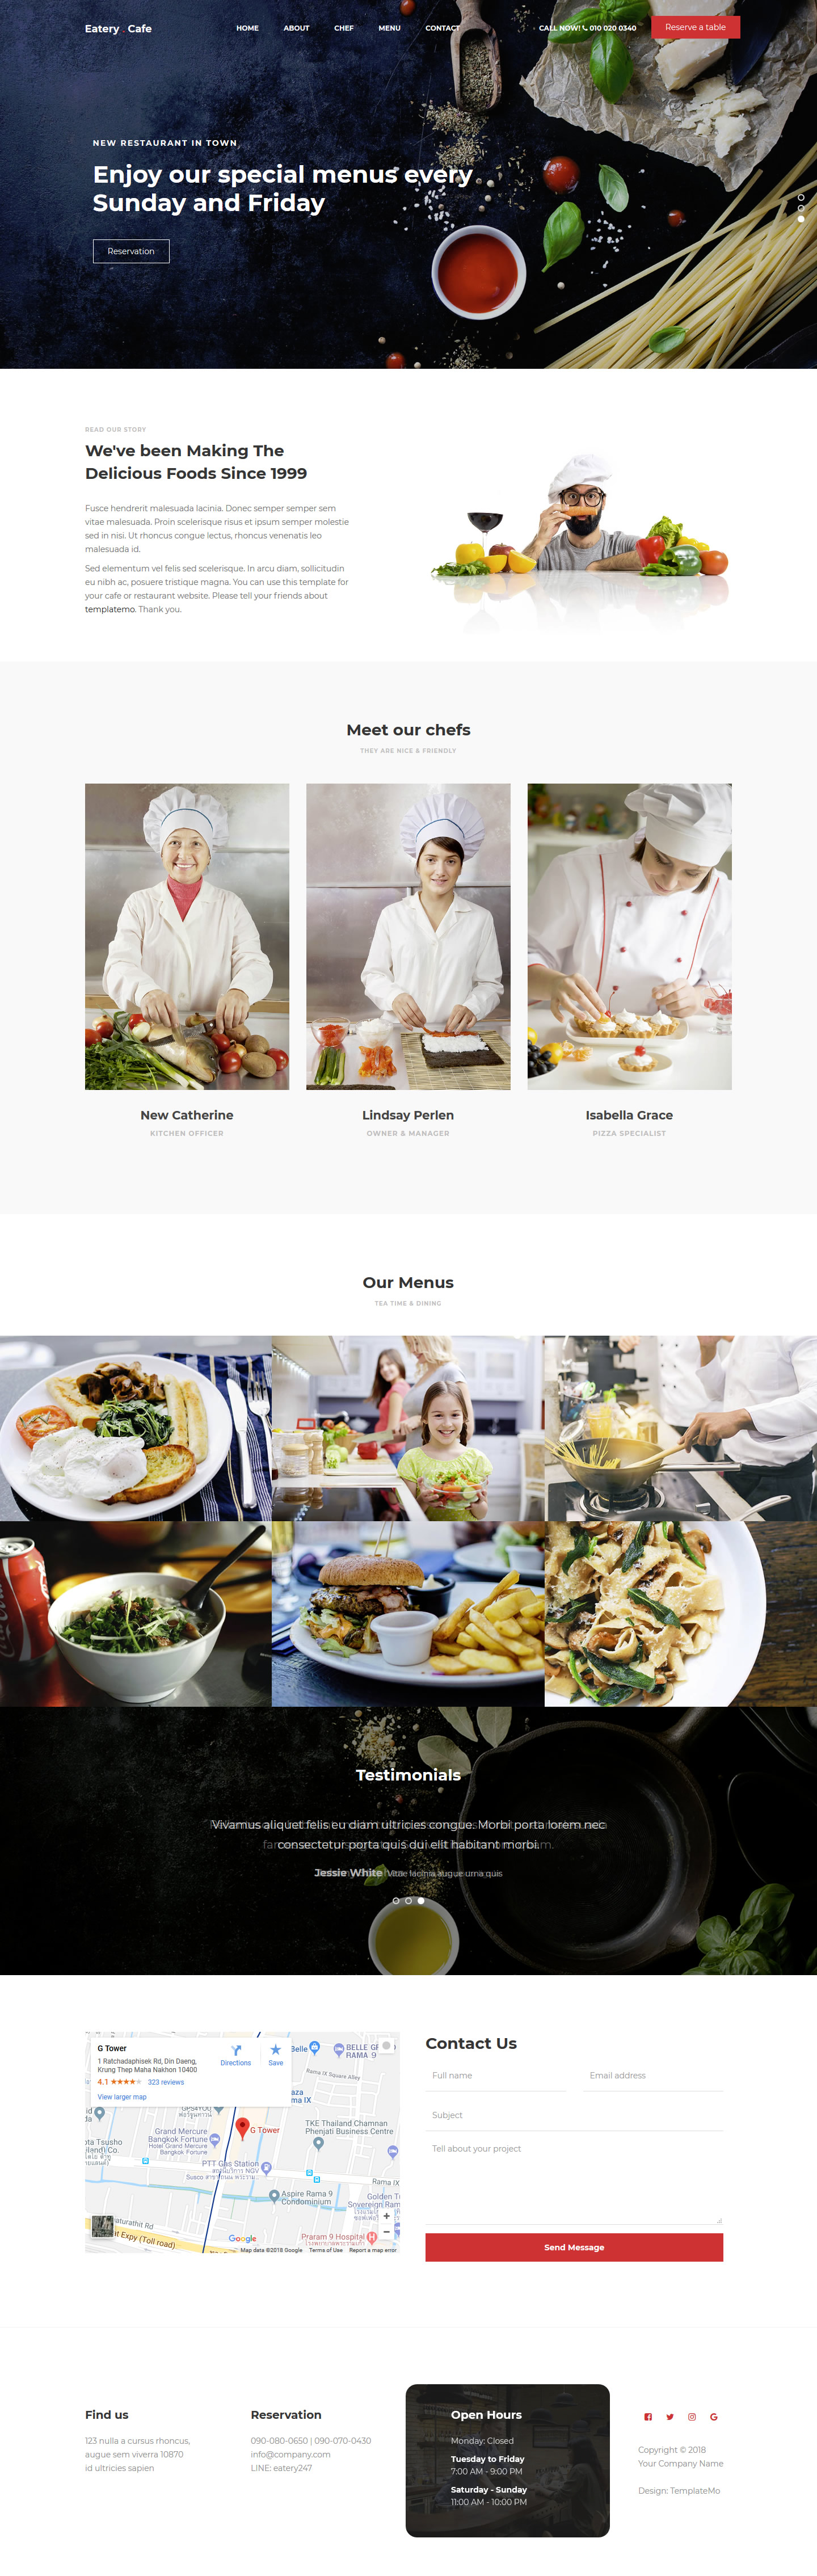 Eatery is a free responsive and cross browser compatible Bootstrap based HTML template. It is also retina ready which makes the template suitable for all the screen sizes. Eatery free HTML template designed for food related websites, coffeeshop, restaurants.